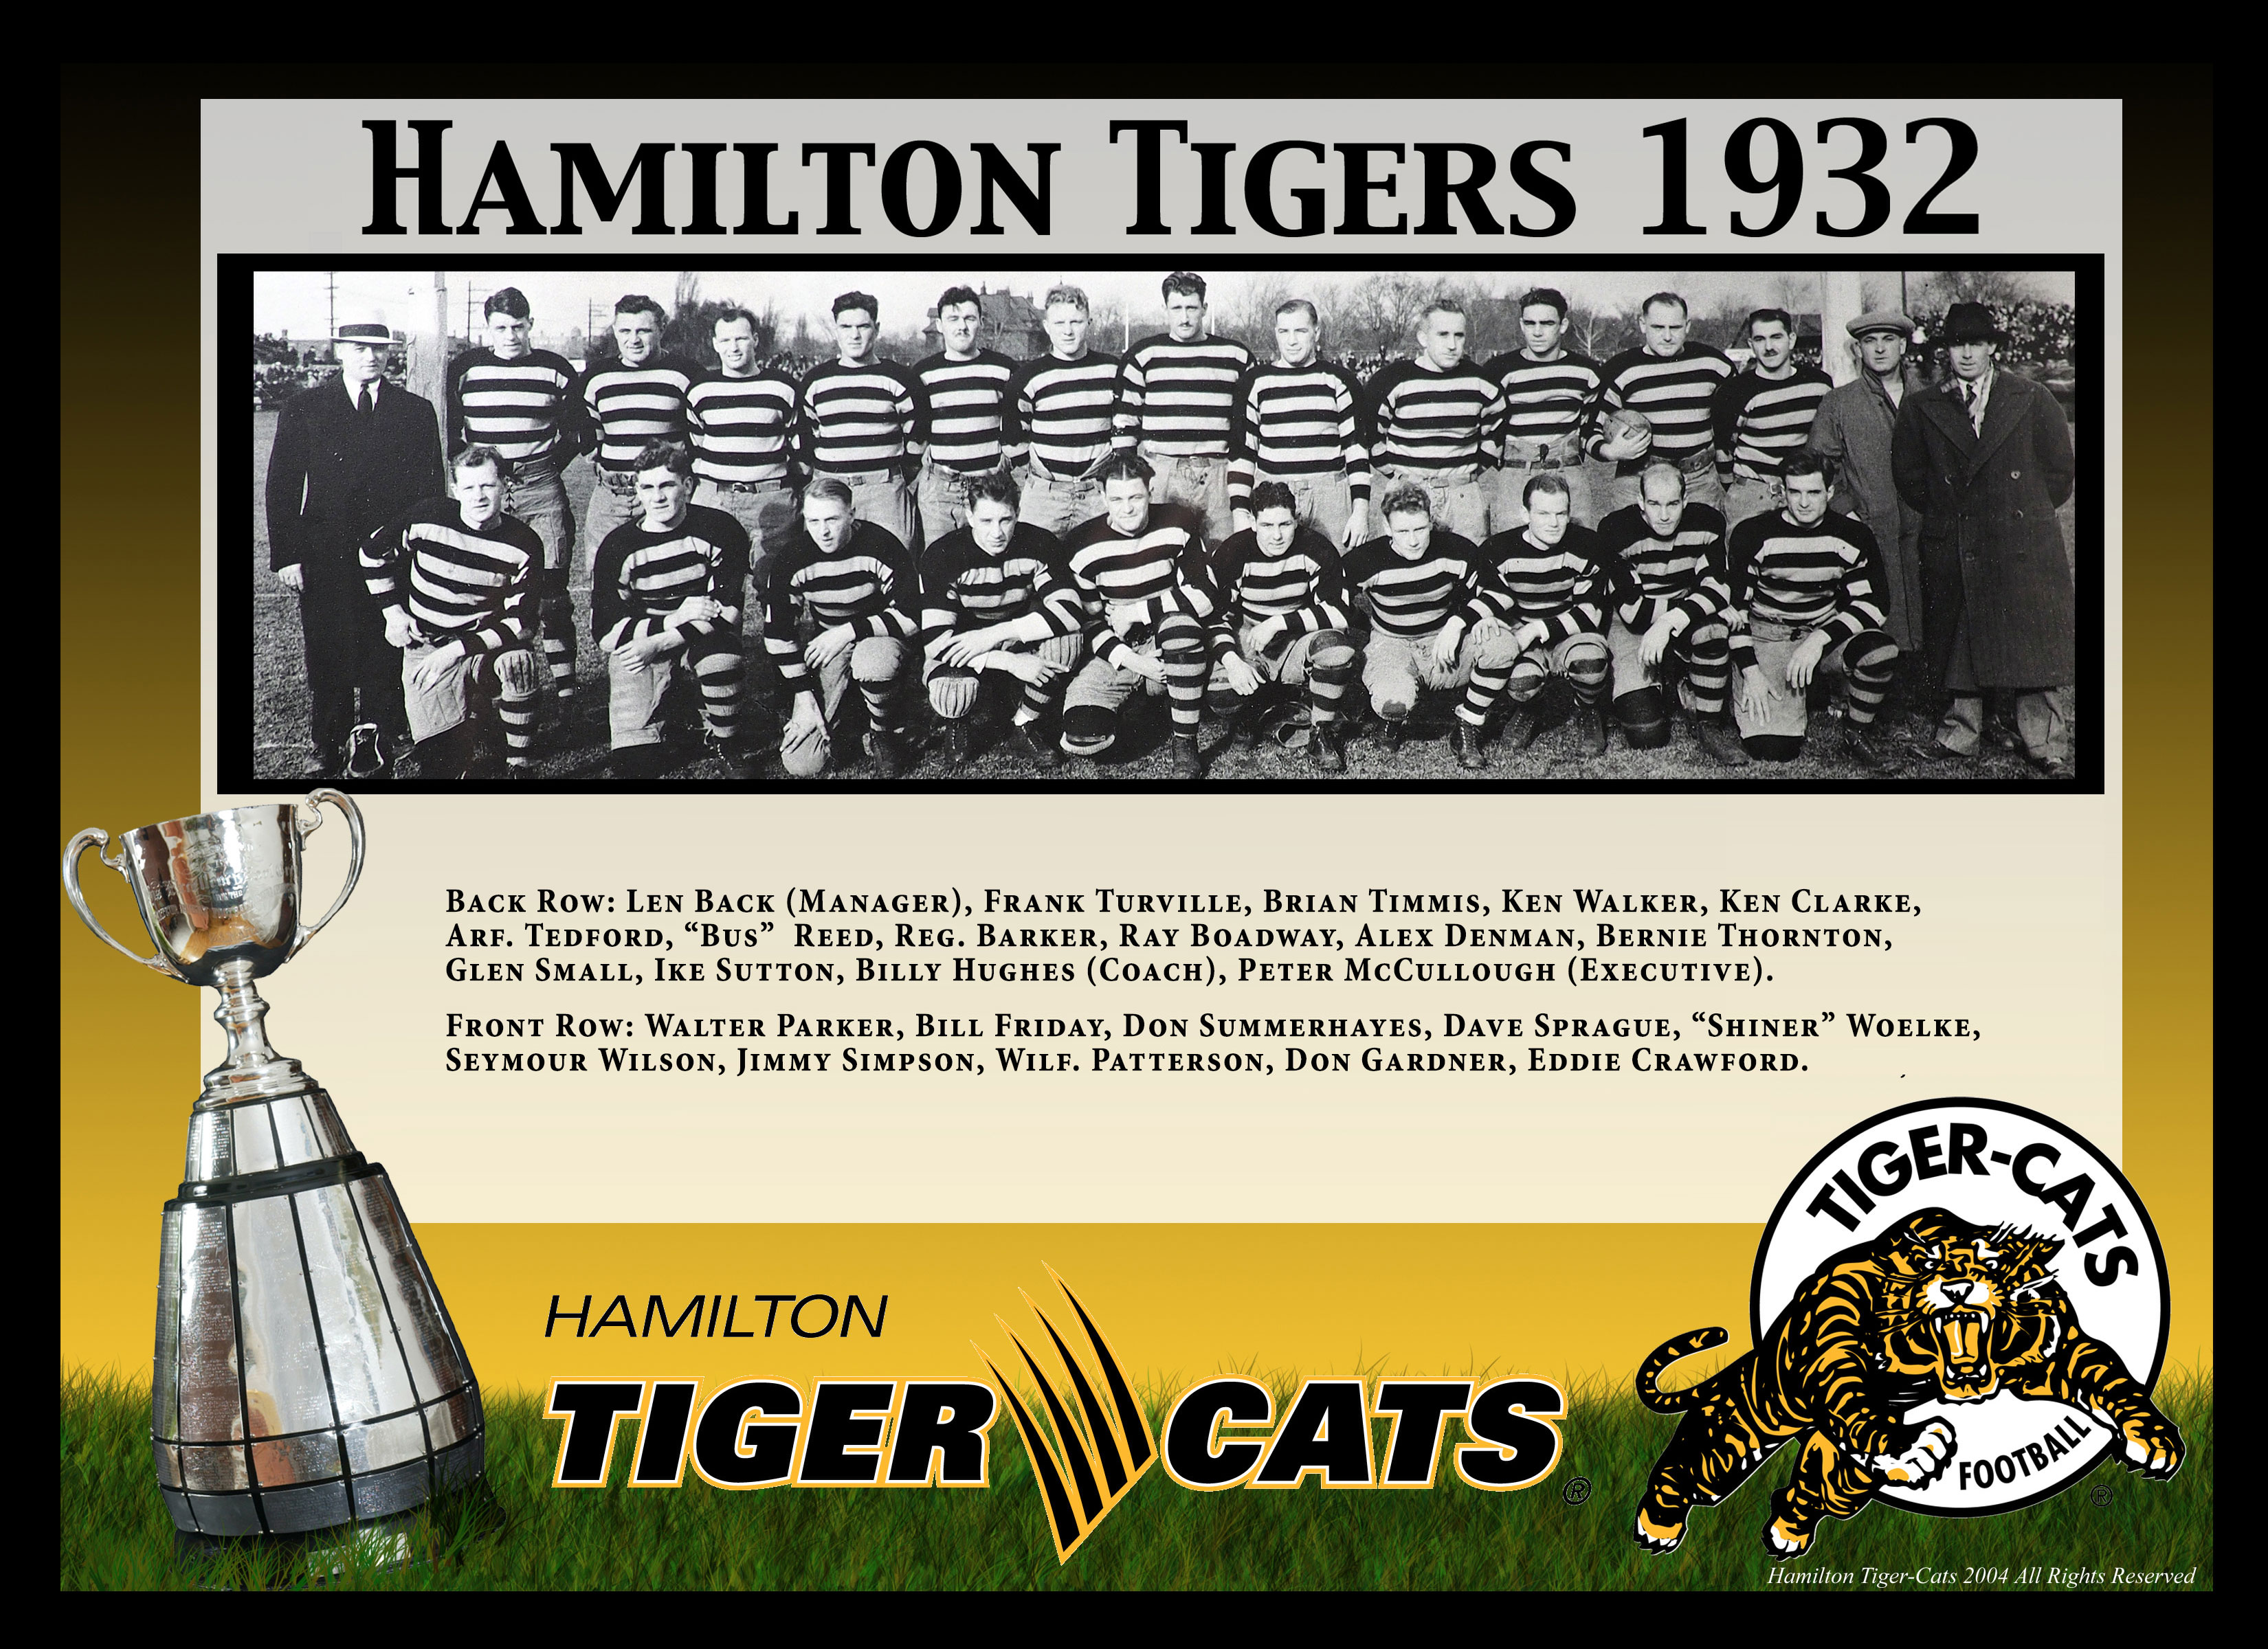 Hamilton Tiger Cats Alumni Association